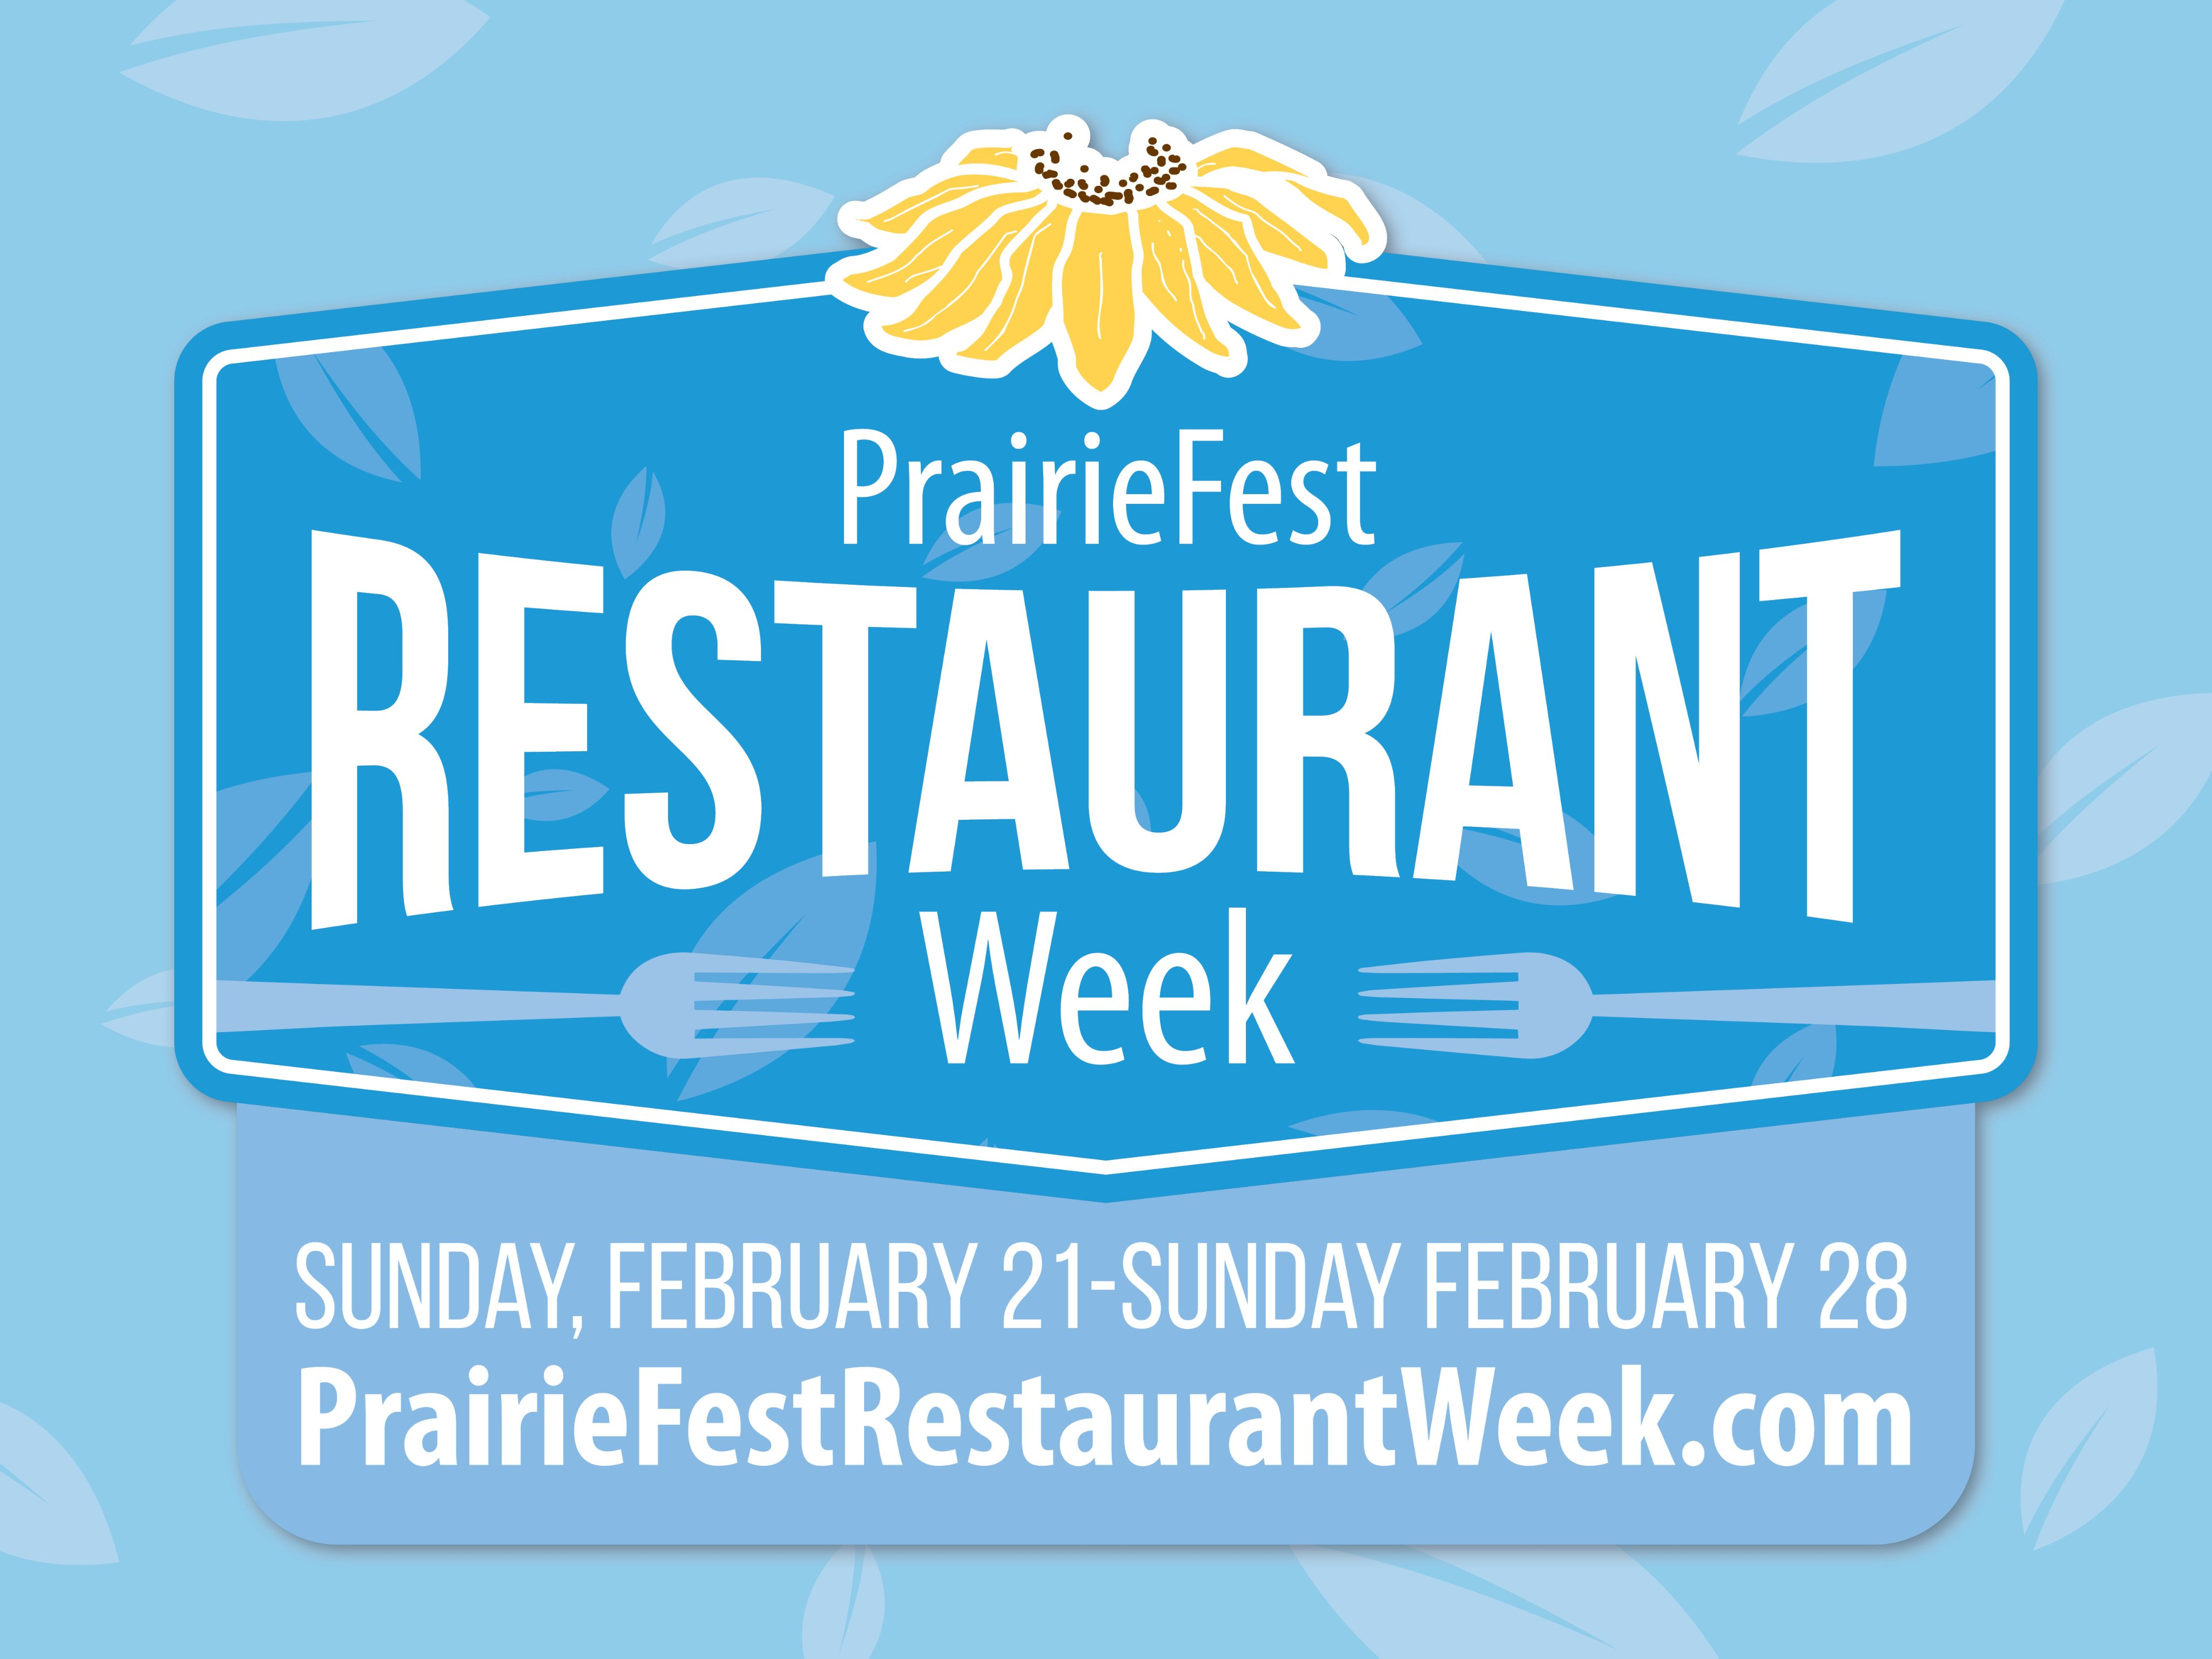 PrairieFest Restaurant Week